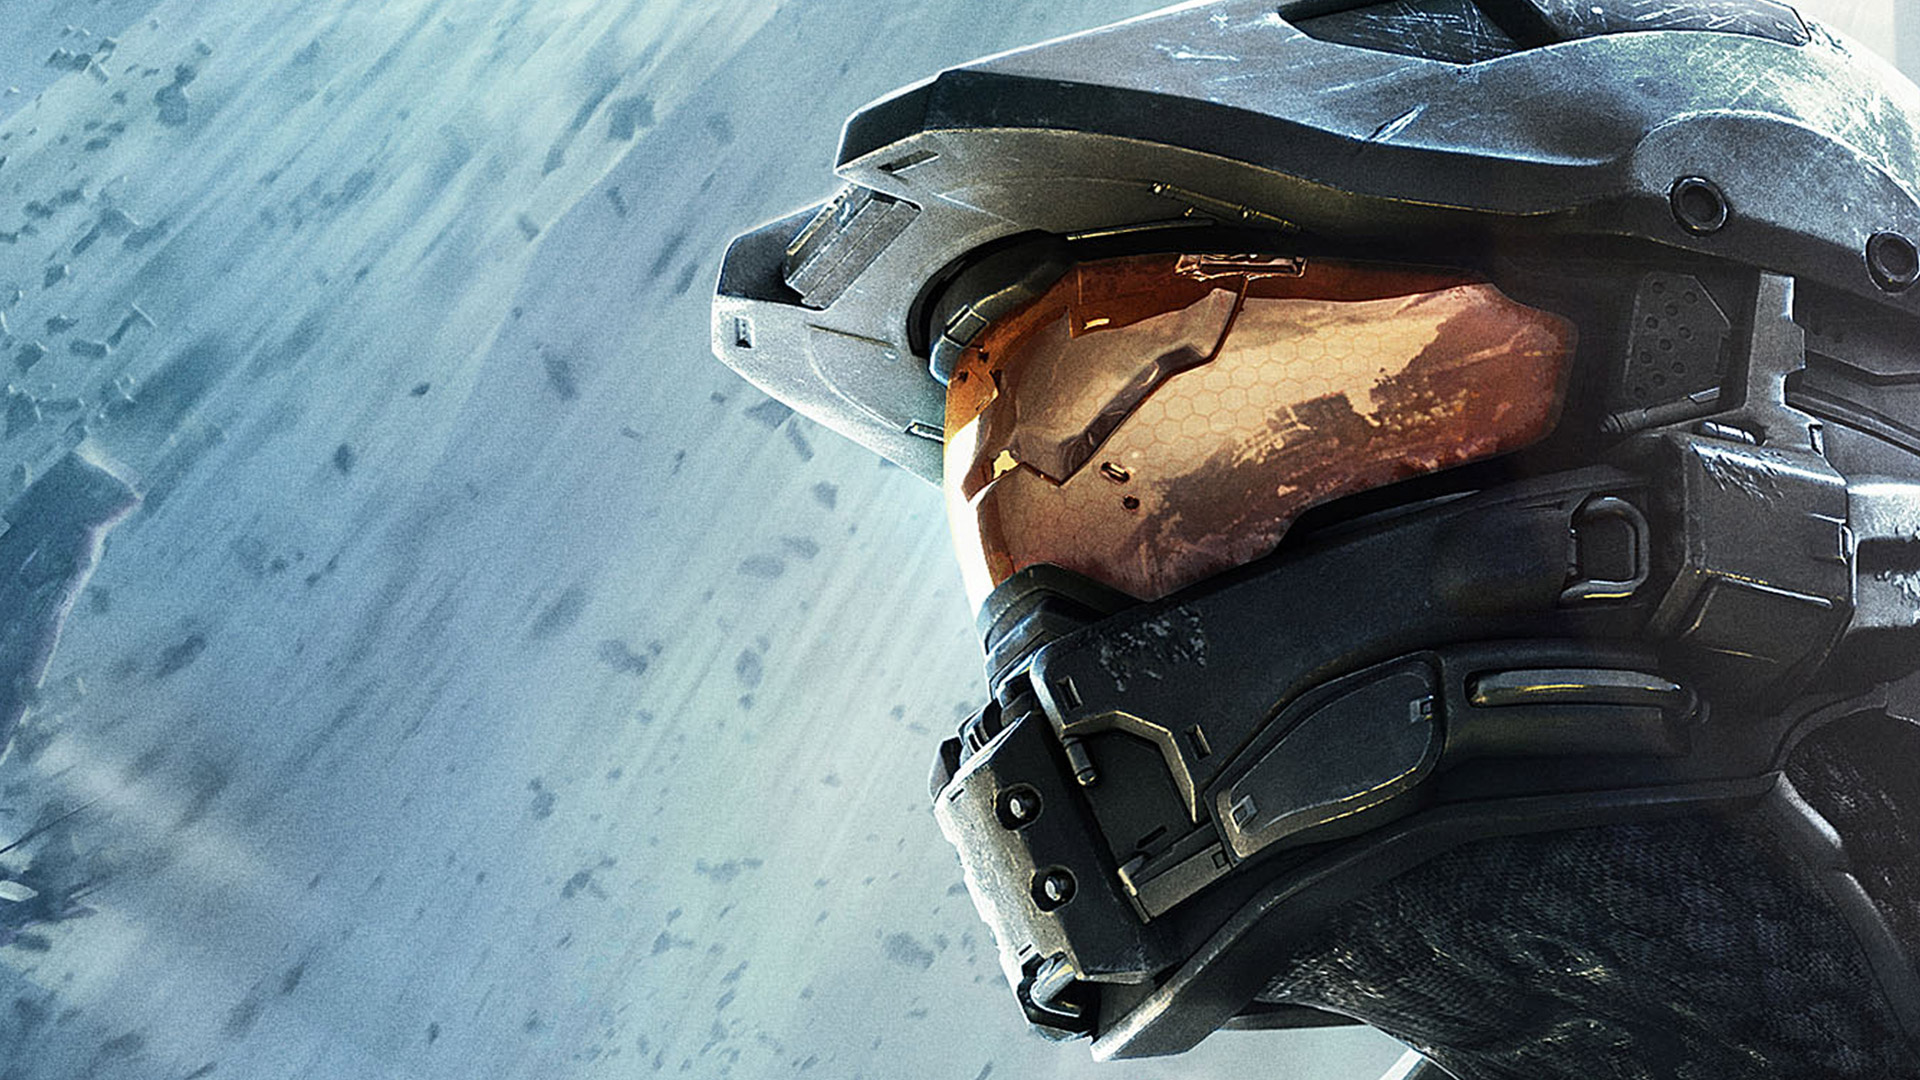 other wallpapers of Halo 4 You are downloading Halo 4 wallpaper 45 1920x1080